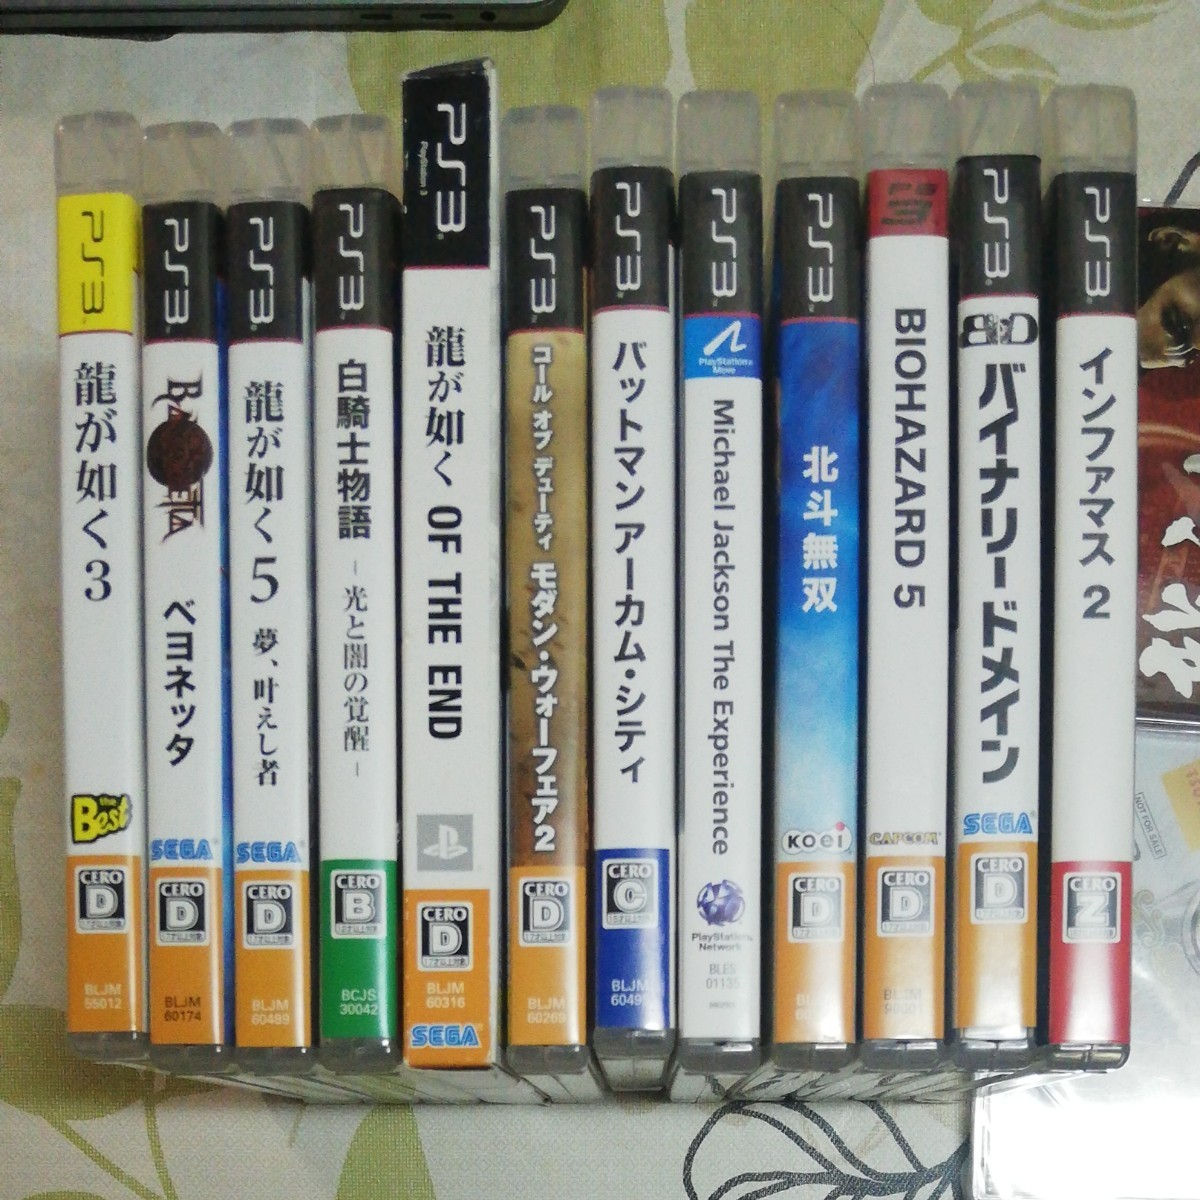 PS3ソフト 15枚セット